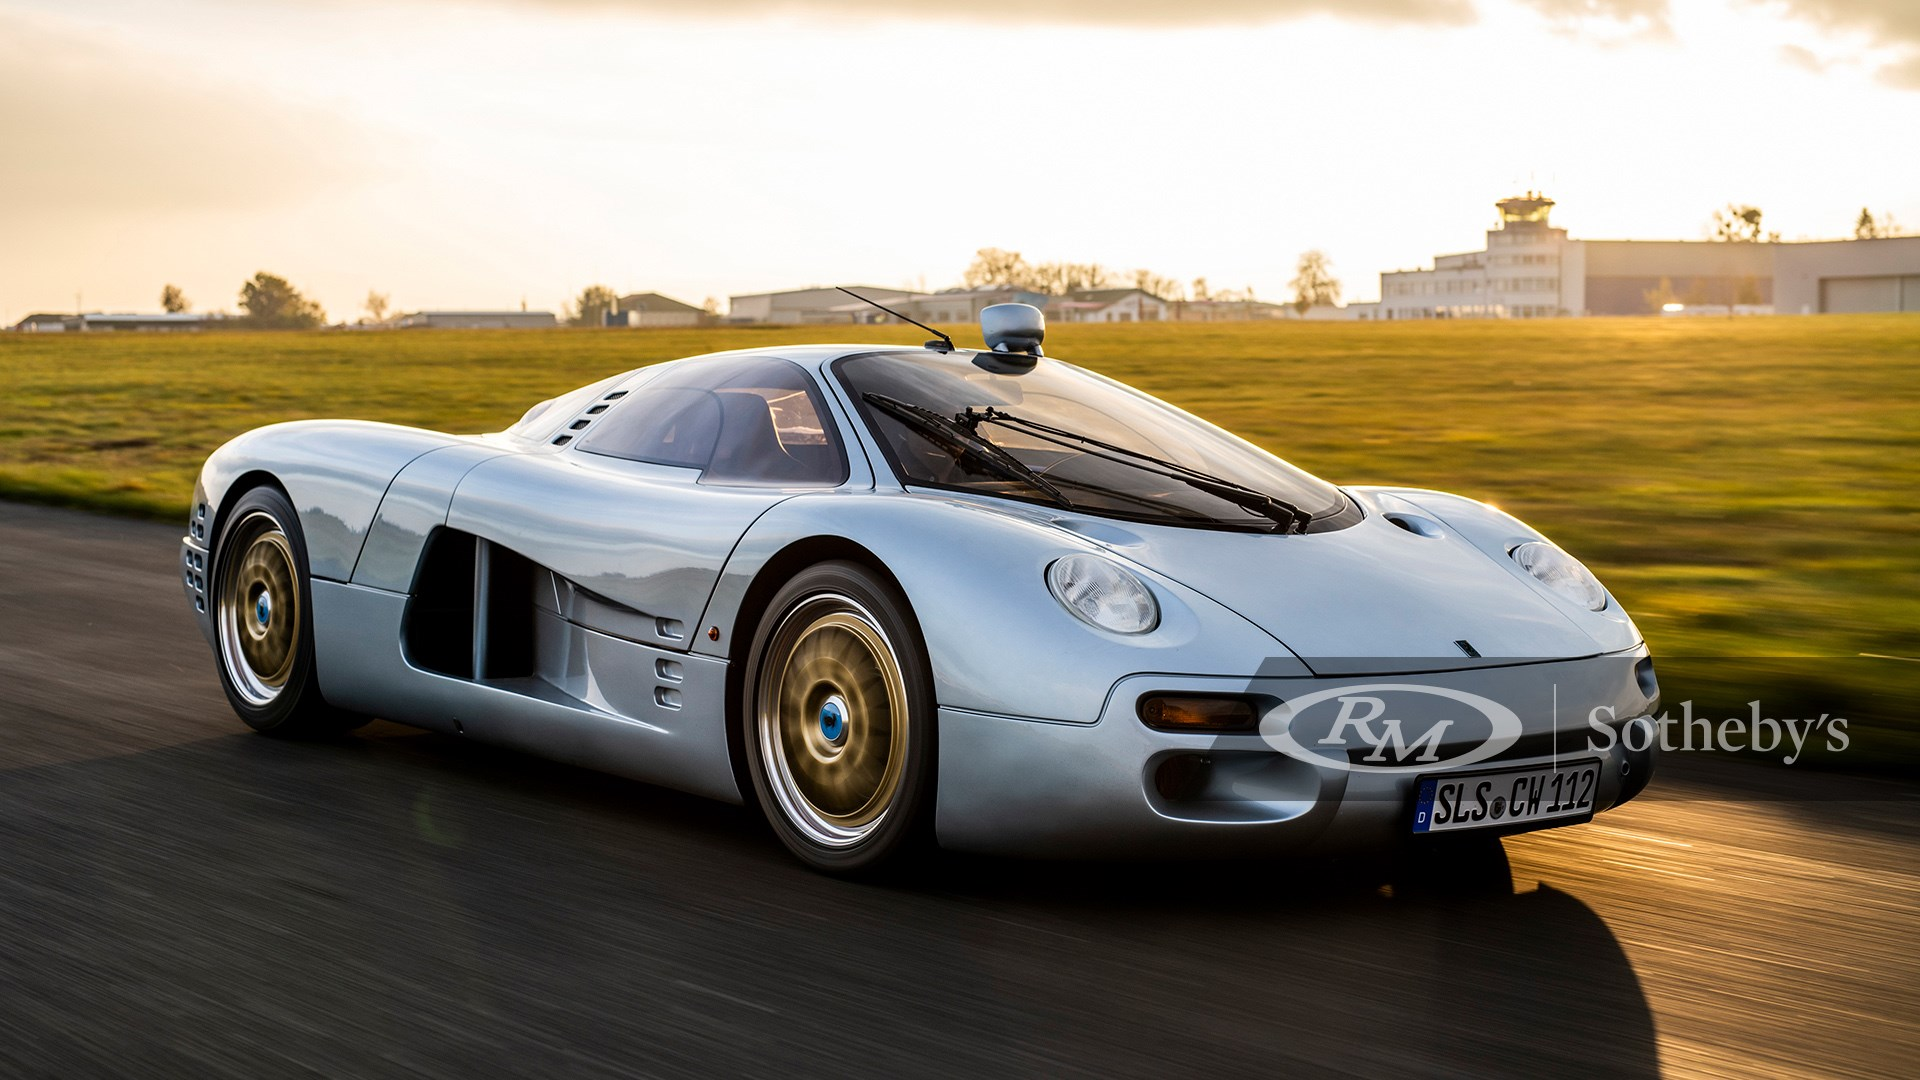 1993 Isdera Commendatore 112i available at RM Sotheby's Paris Auction 2021